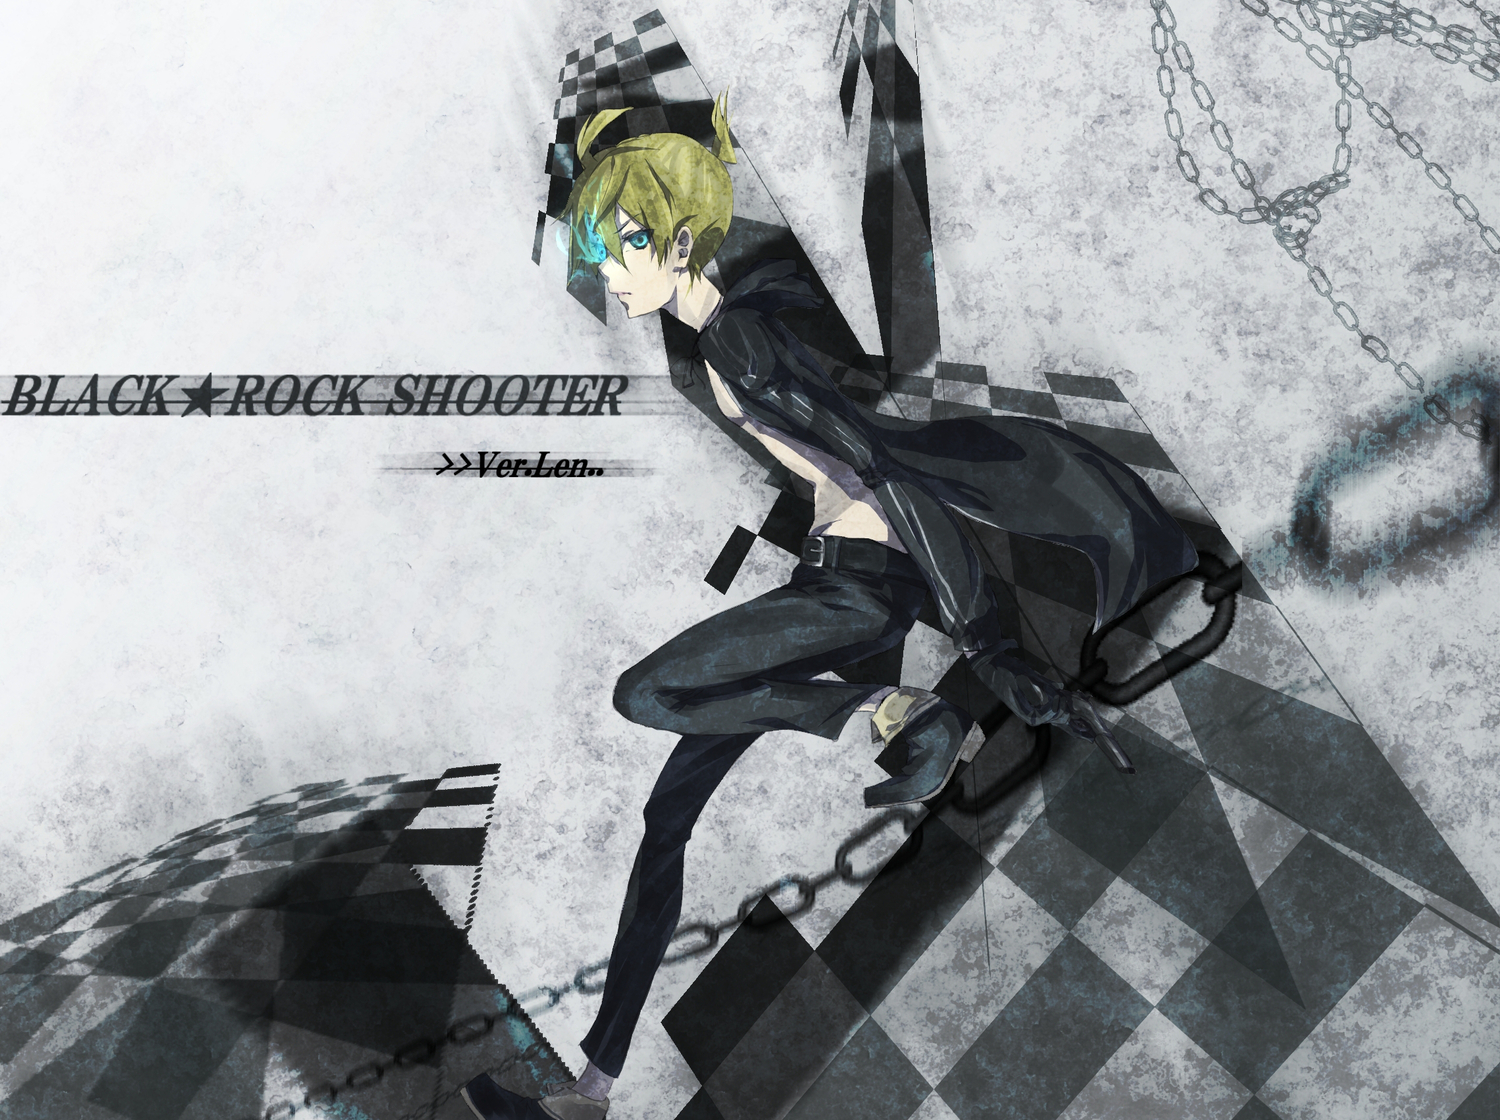 aliasing all_male black_rock_shooter cosplay crossover kagamine_len male takka vocaloid